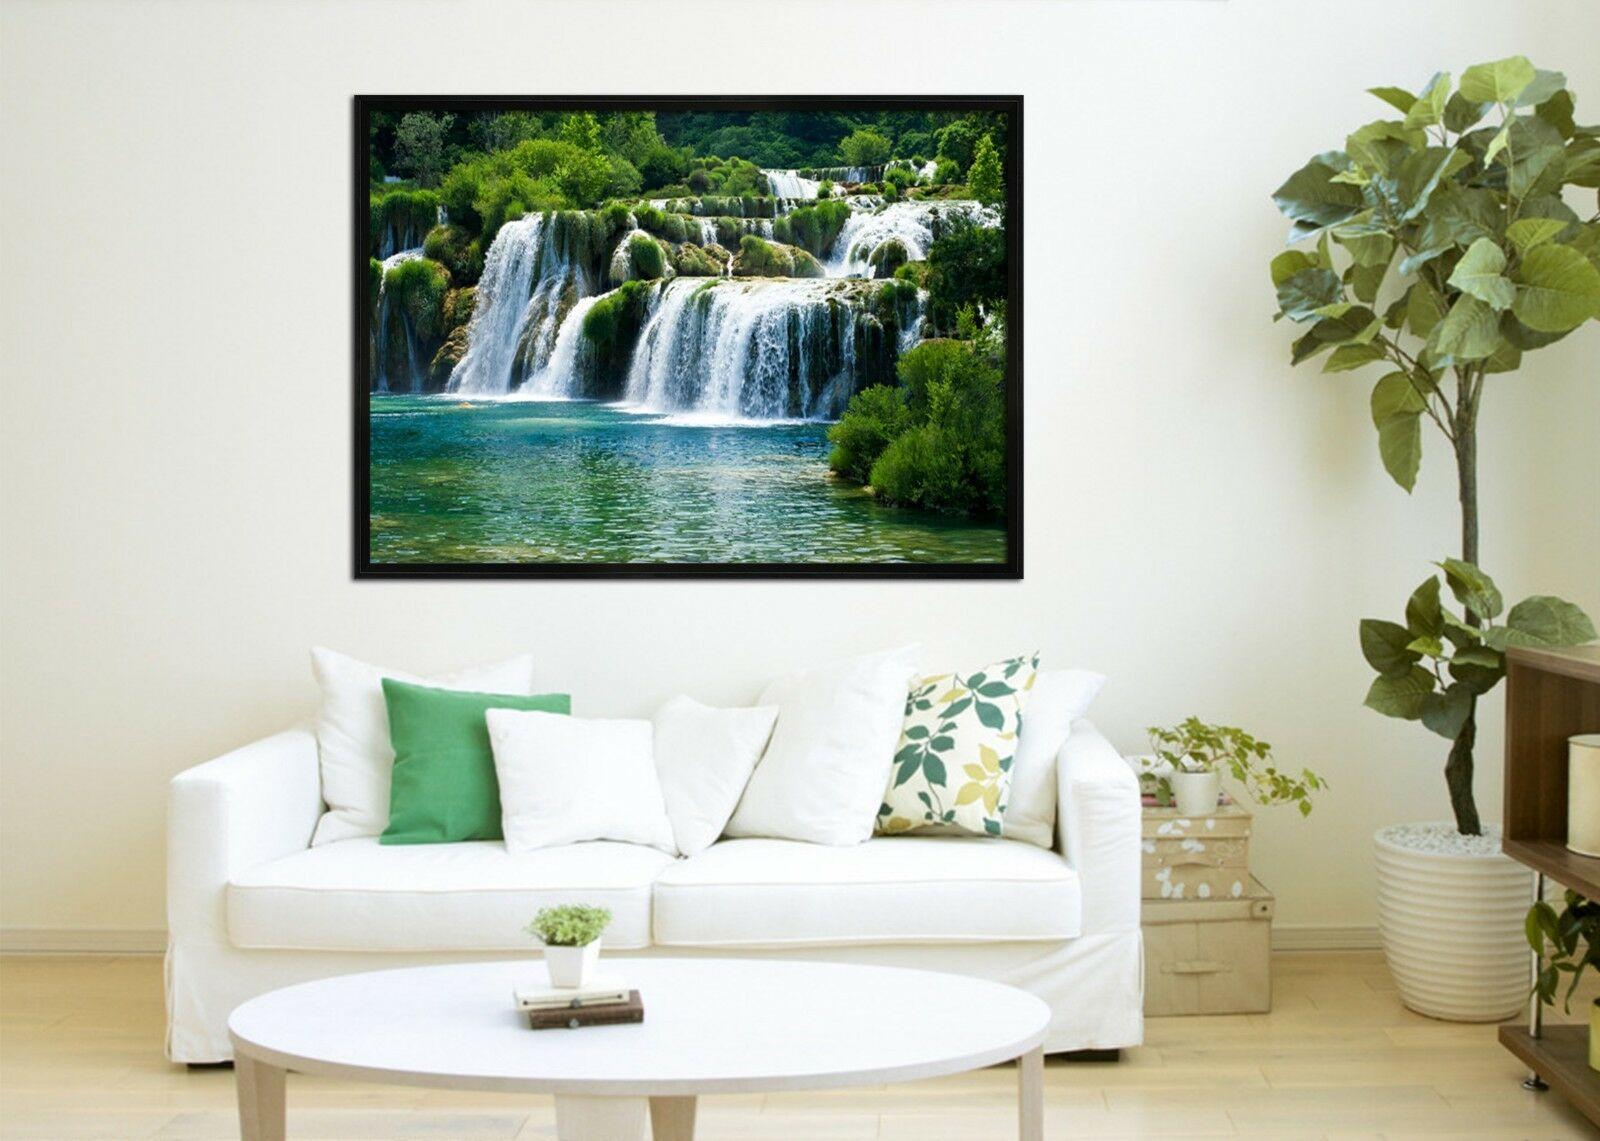 3D Grün Trees River 8 Framed Poster Home Decor Drucken Painting Kunst AJ WandPapier